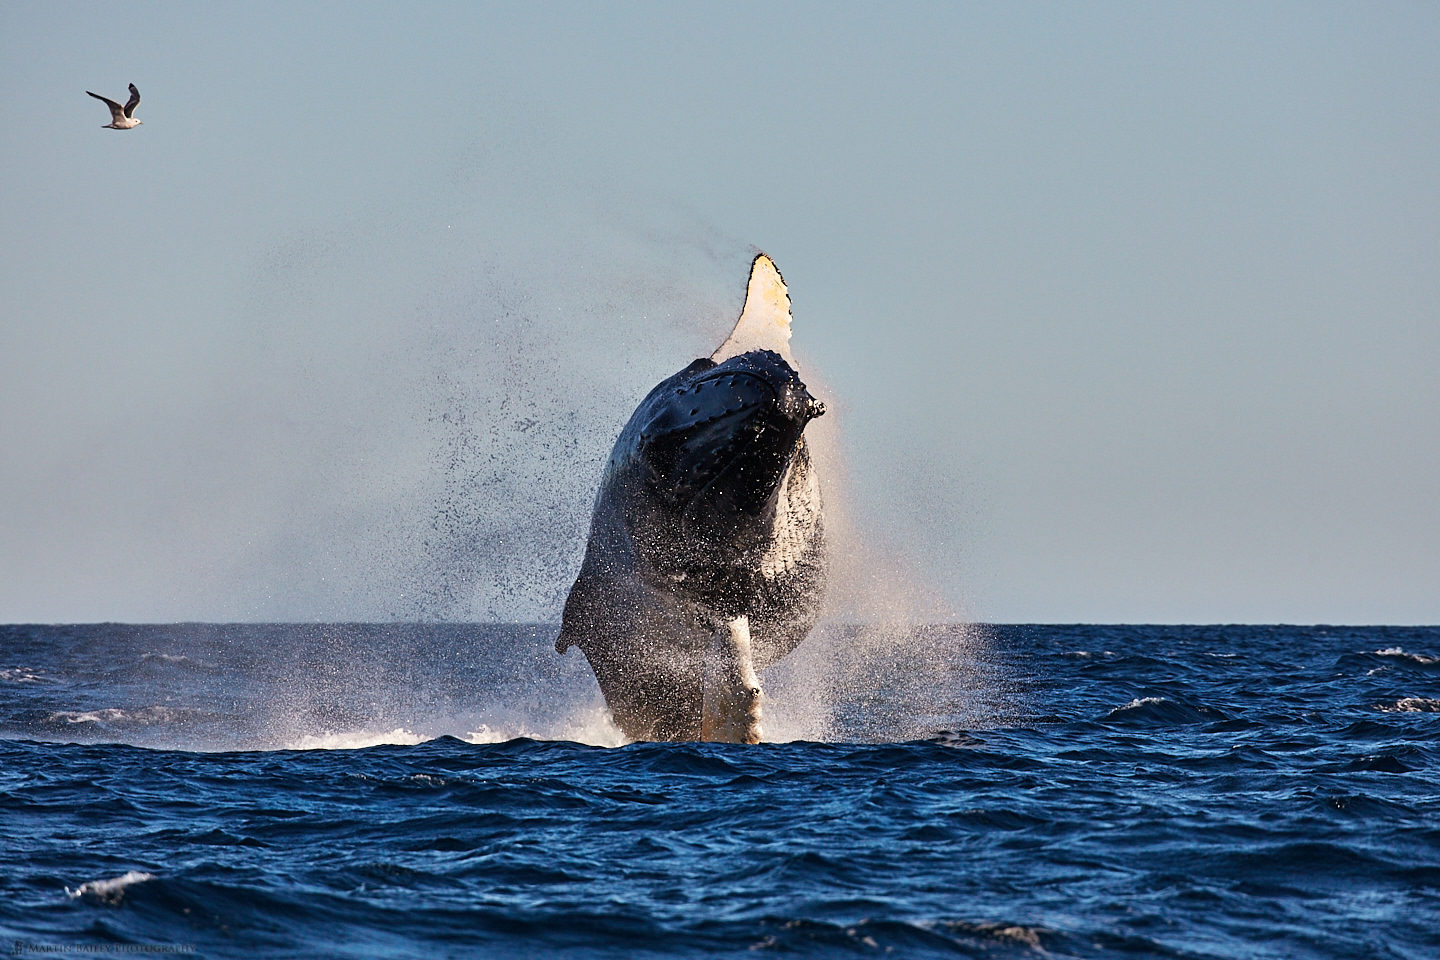 Breaching Humpback Whale - Front View